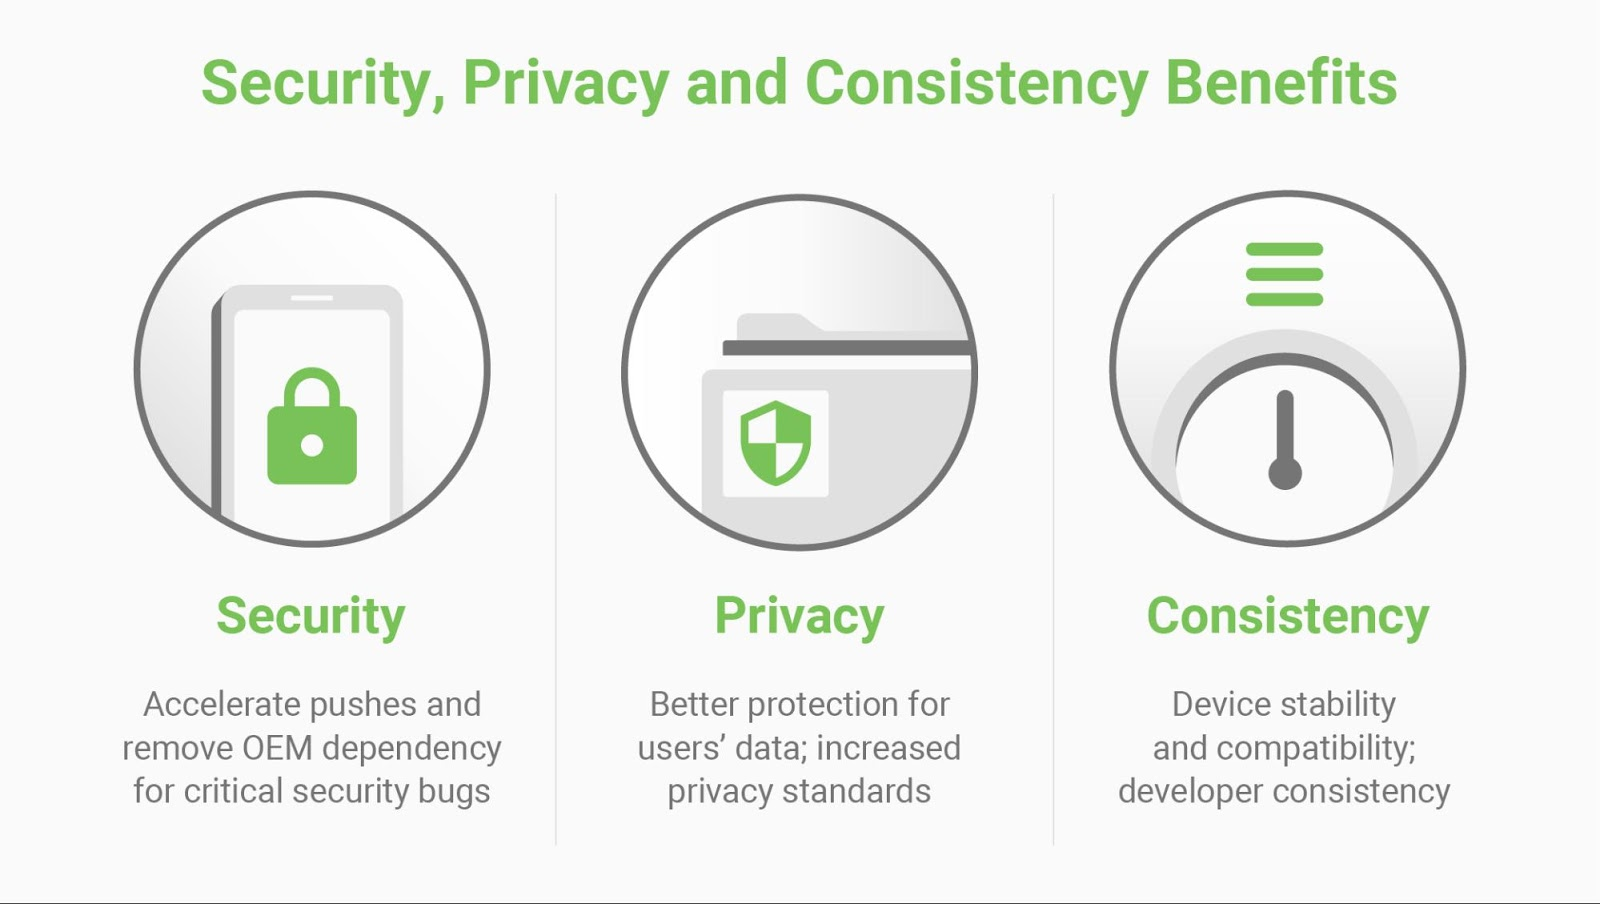 Project Mainline has security, privacy and consistency benefits. Security: Accelerate pushes and remove OEM dependency for critical security bugs. Privacy: Better protection for user's data; increased privacy standards. Consistency: Device stability and compatibility; developer consistency.